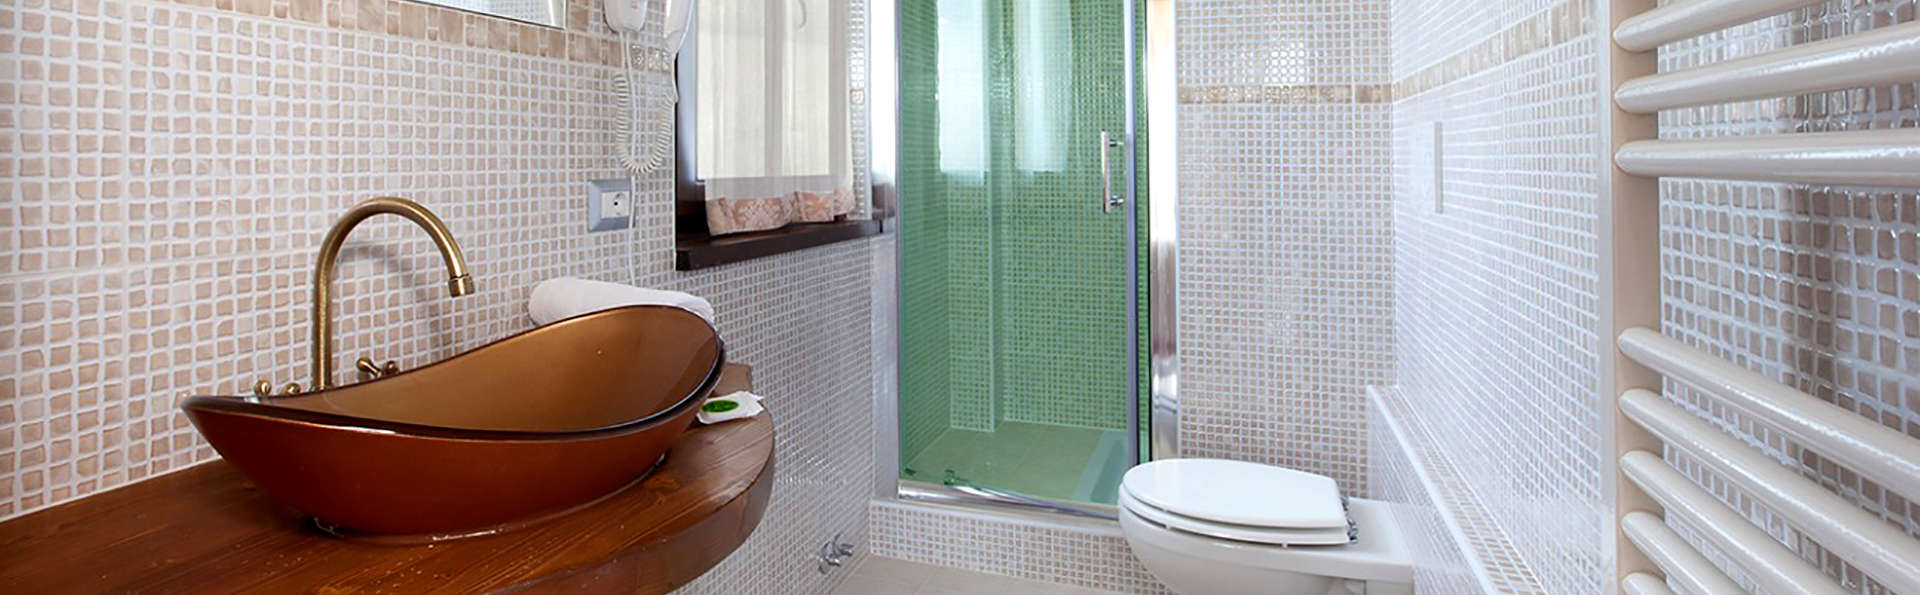 Umbria Resort & SPA - Edit_Bathroom.jpg